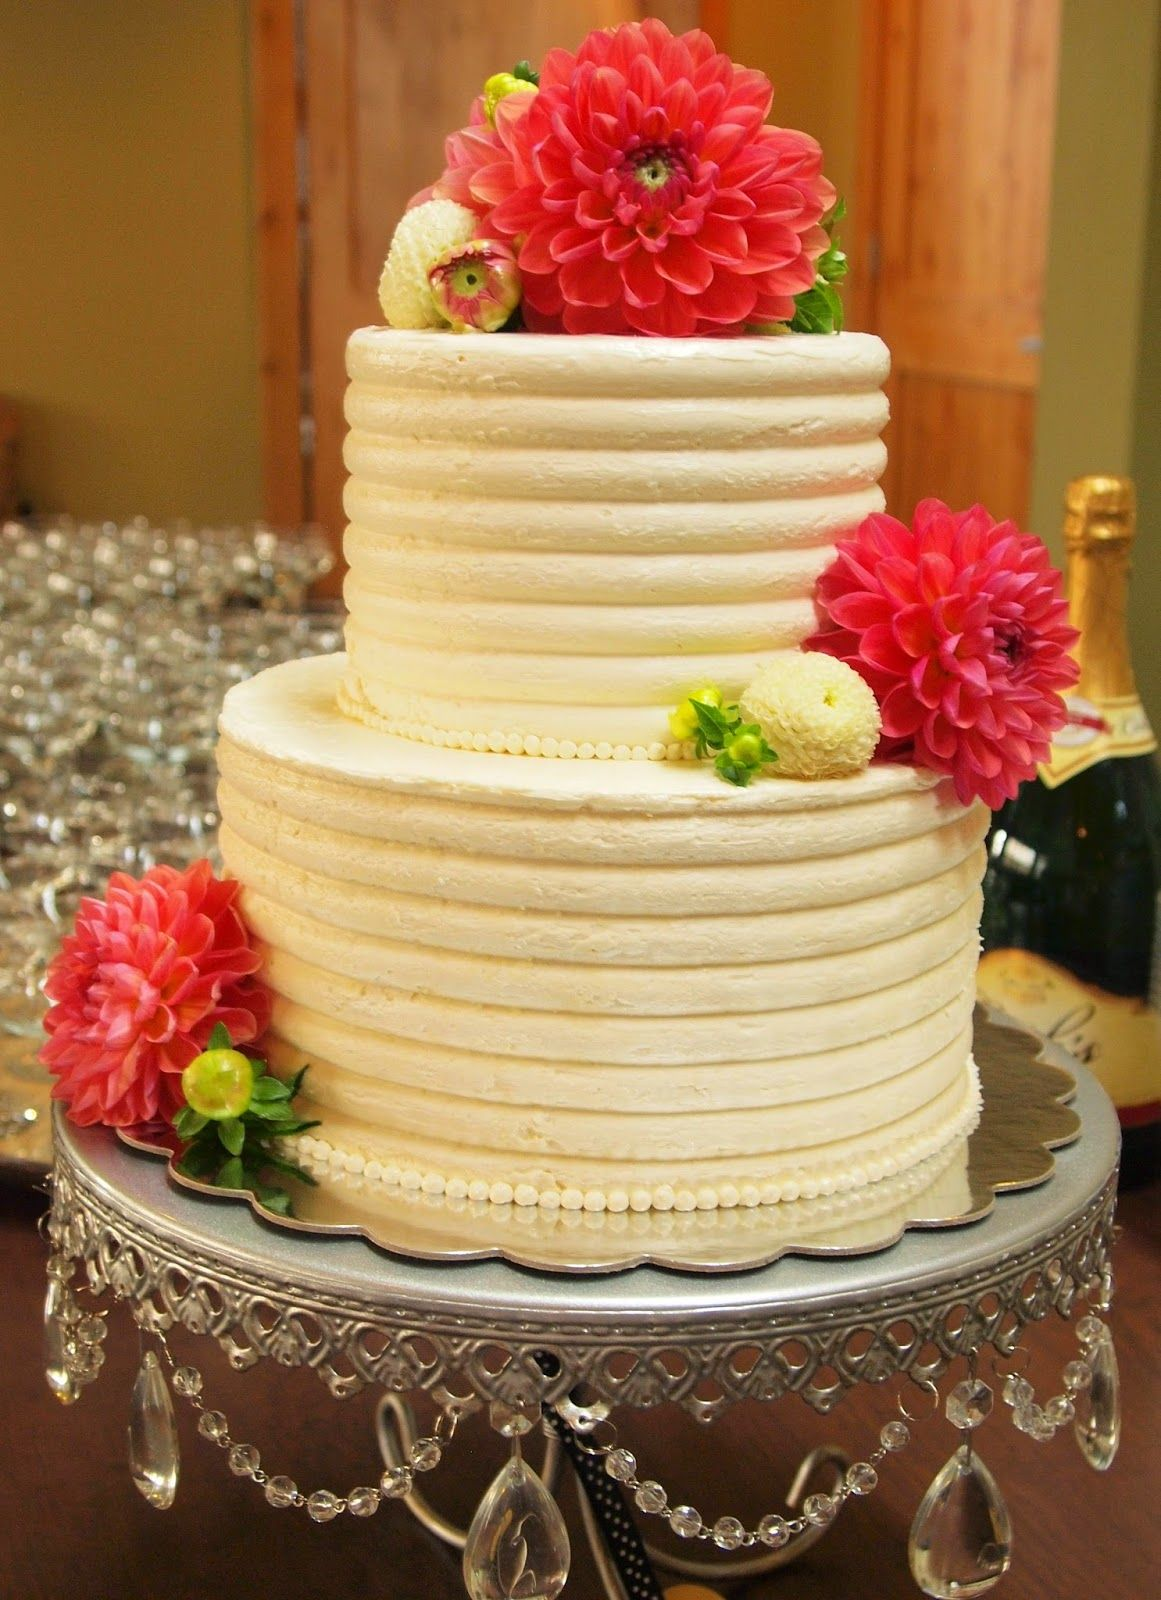 Lovely Flours Bake Shop: Dahlia Wedding Cake | Cake Love | Pinterest ...